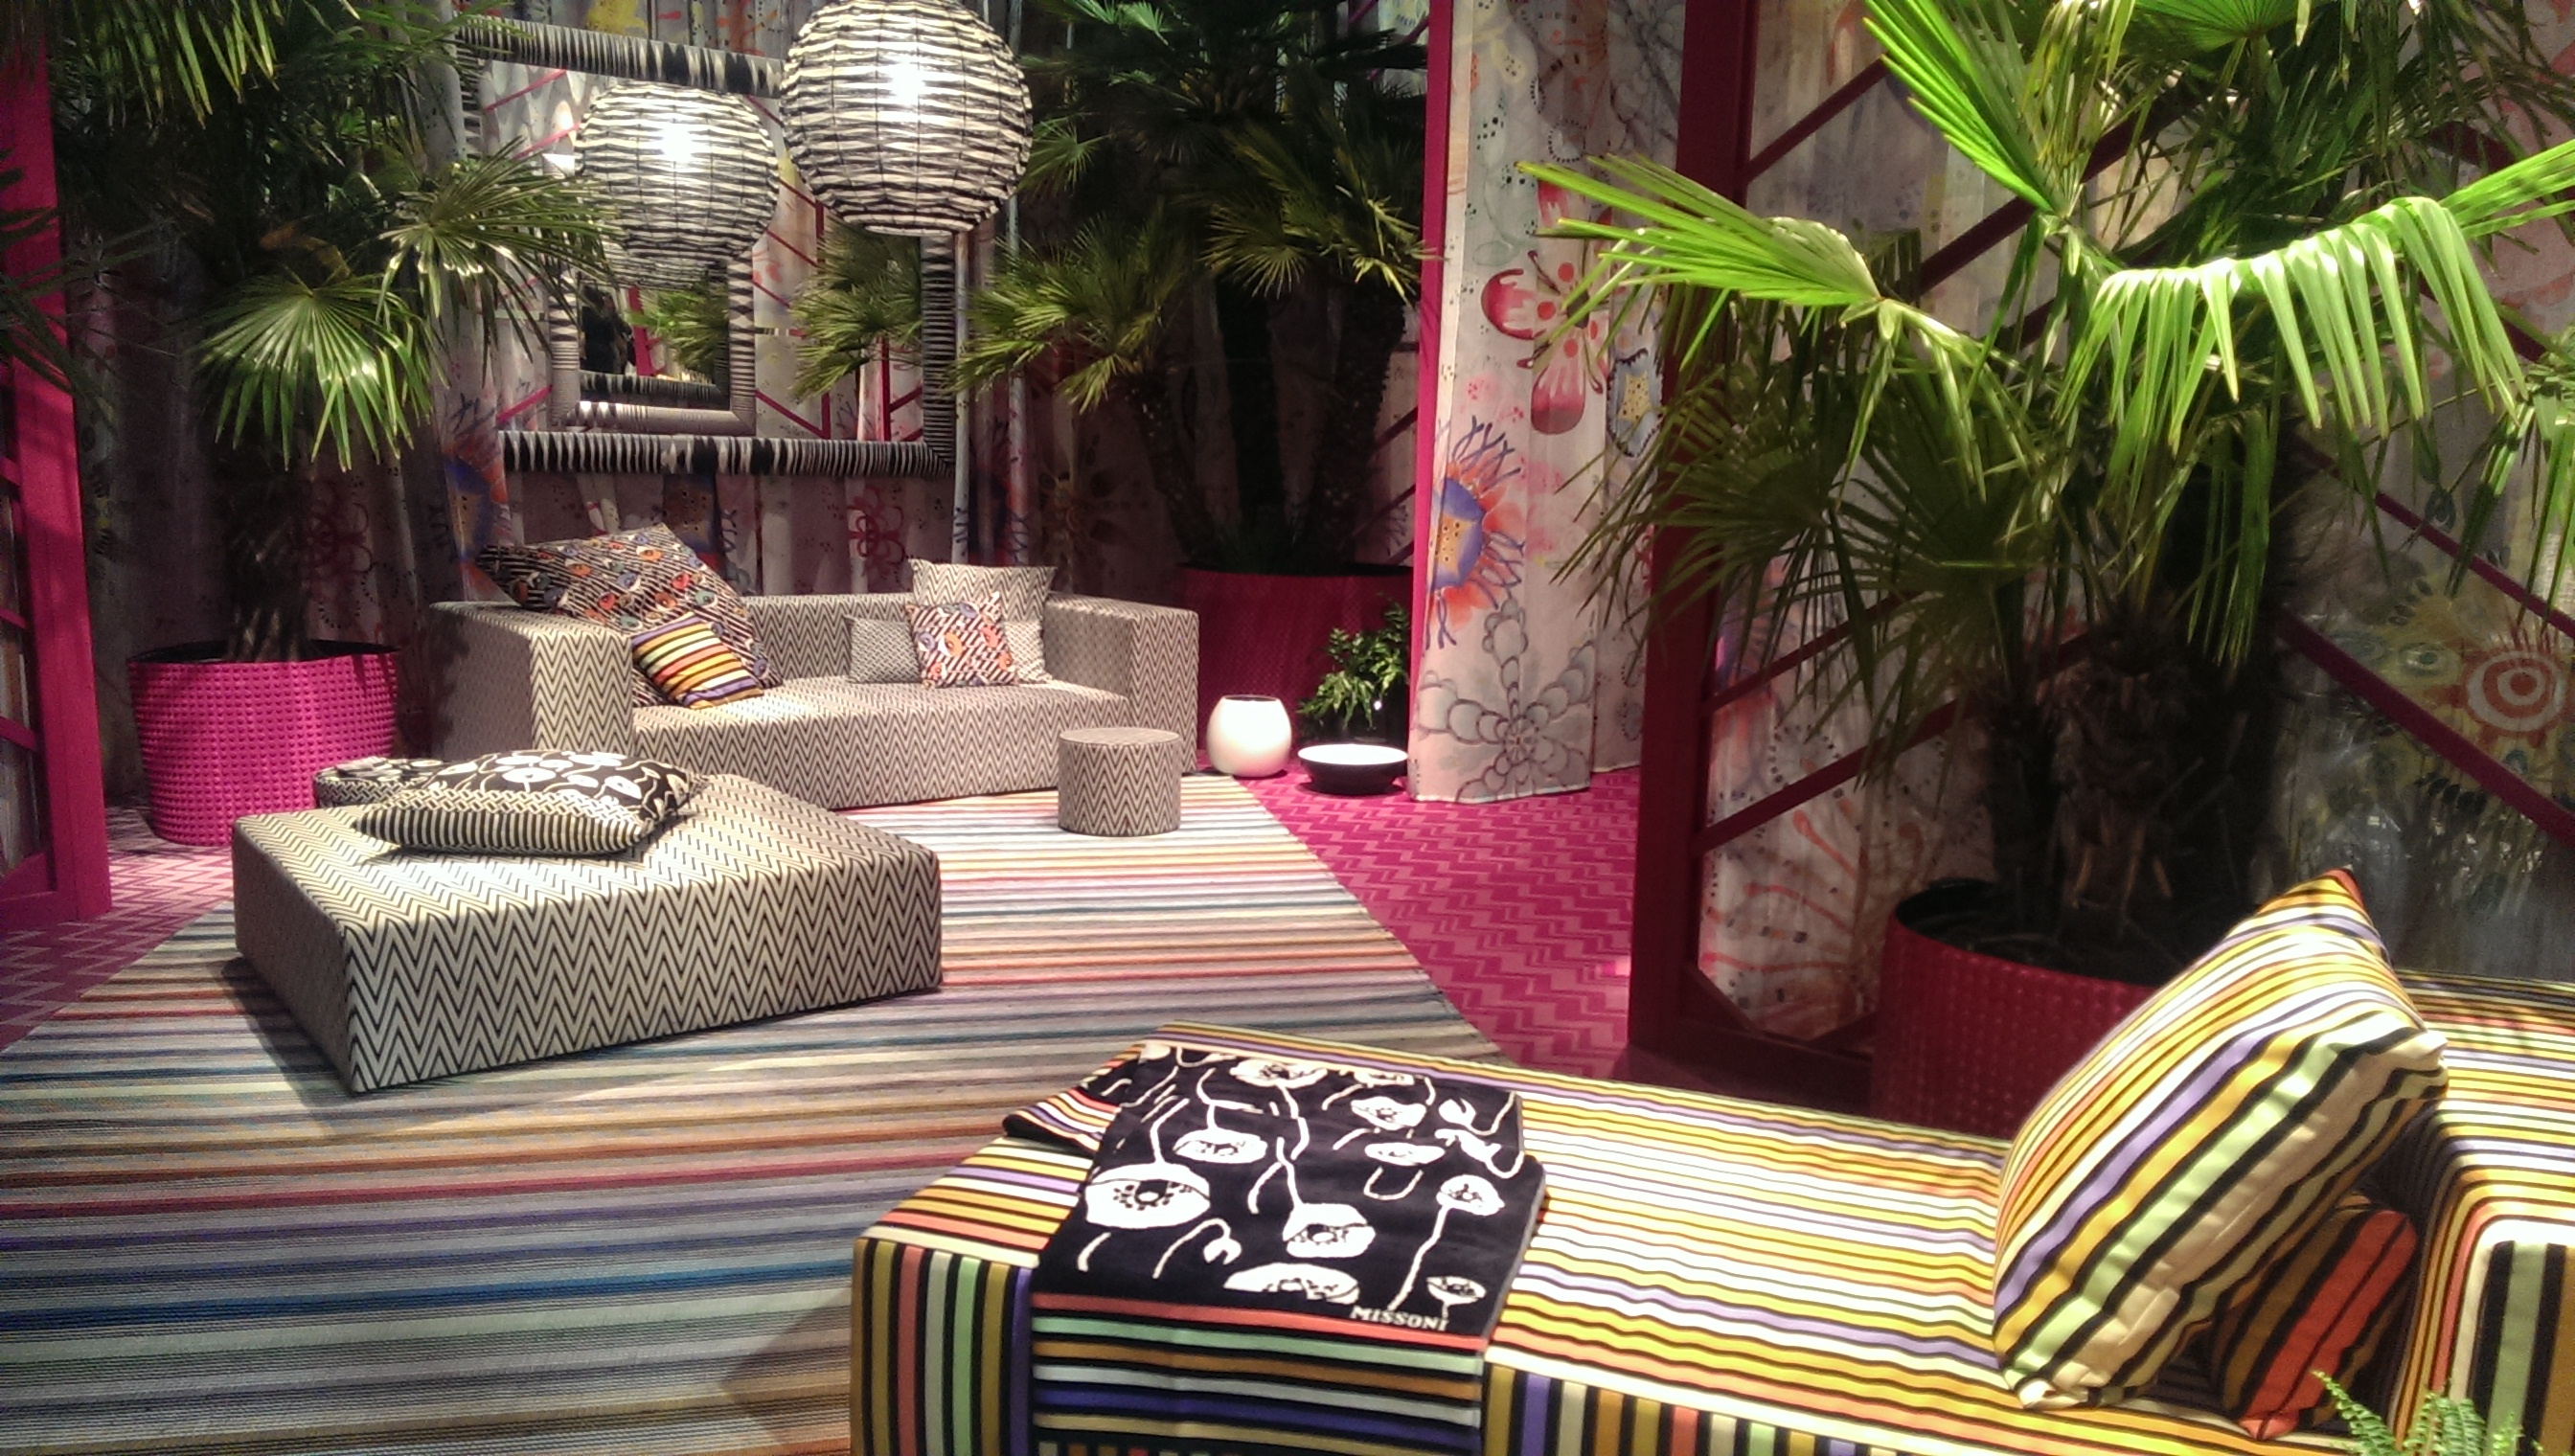 Missoni Iglooo Al Salone Del Mobile Home Design Ideas